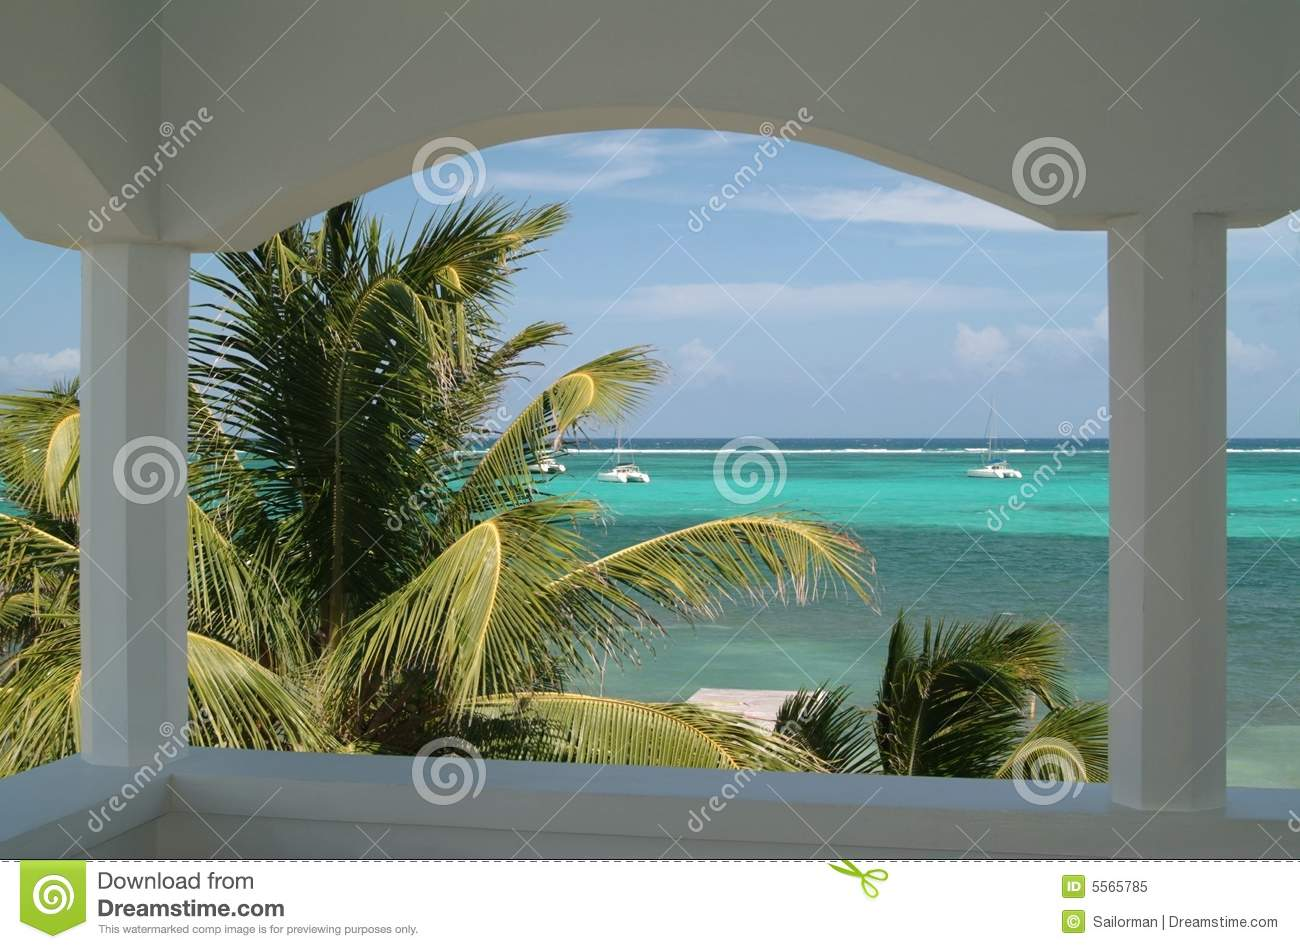 Caribbean Beach Scenes: A Caribbean Beach Scene Royalty Free Stock Photo